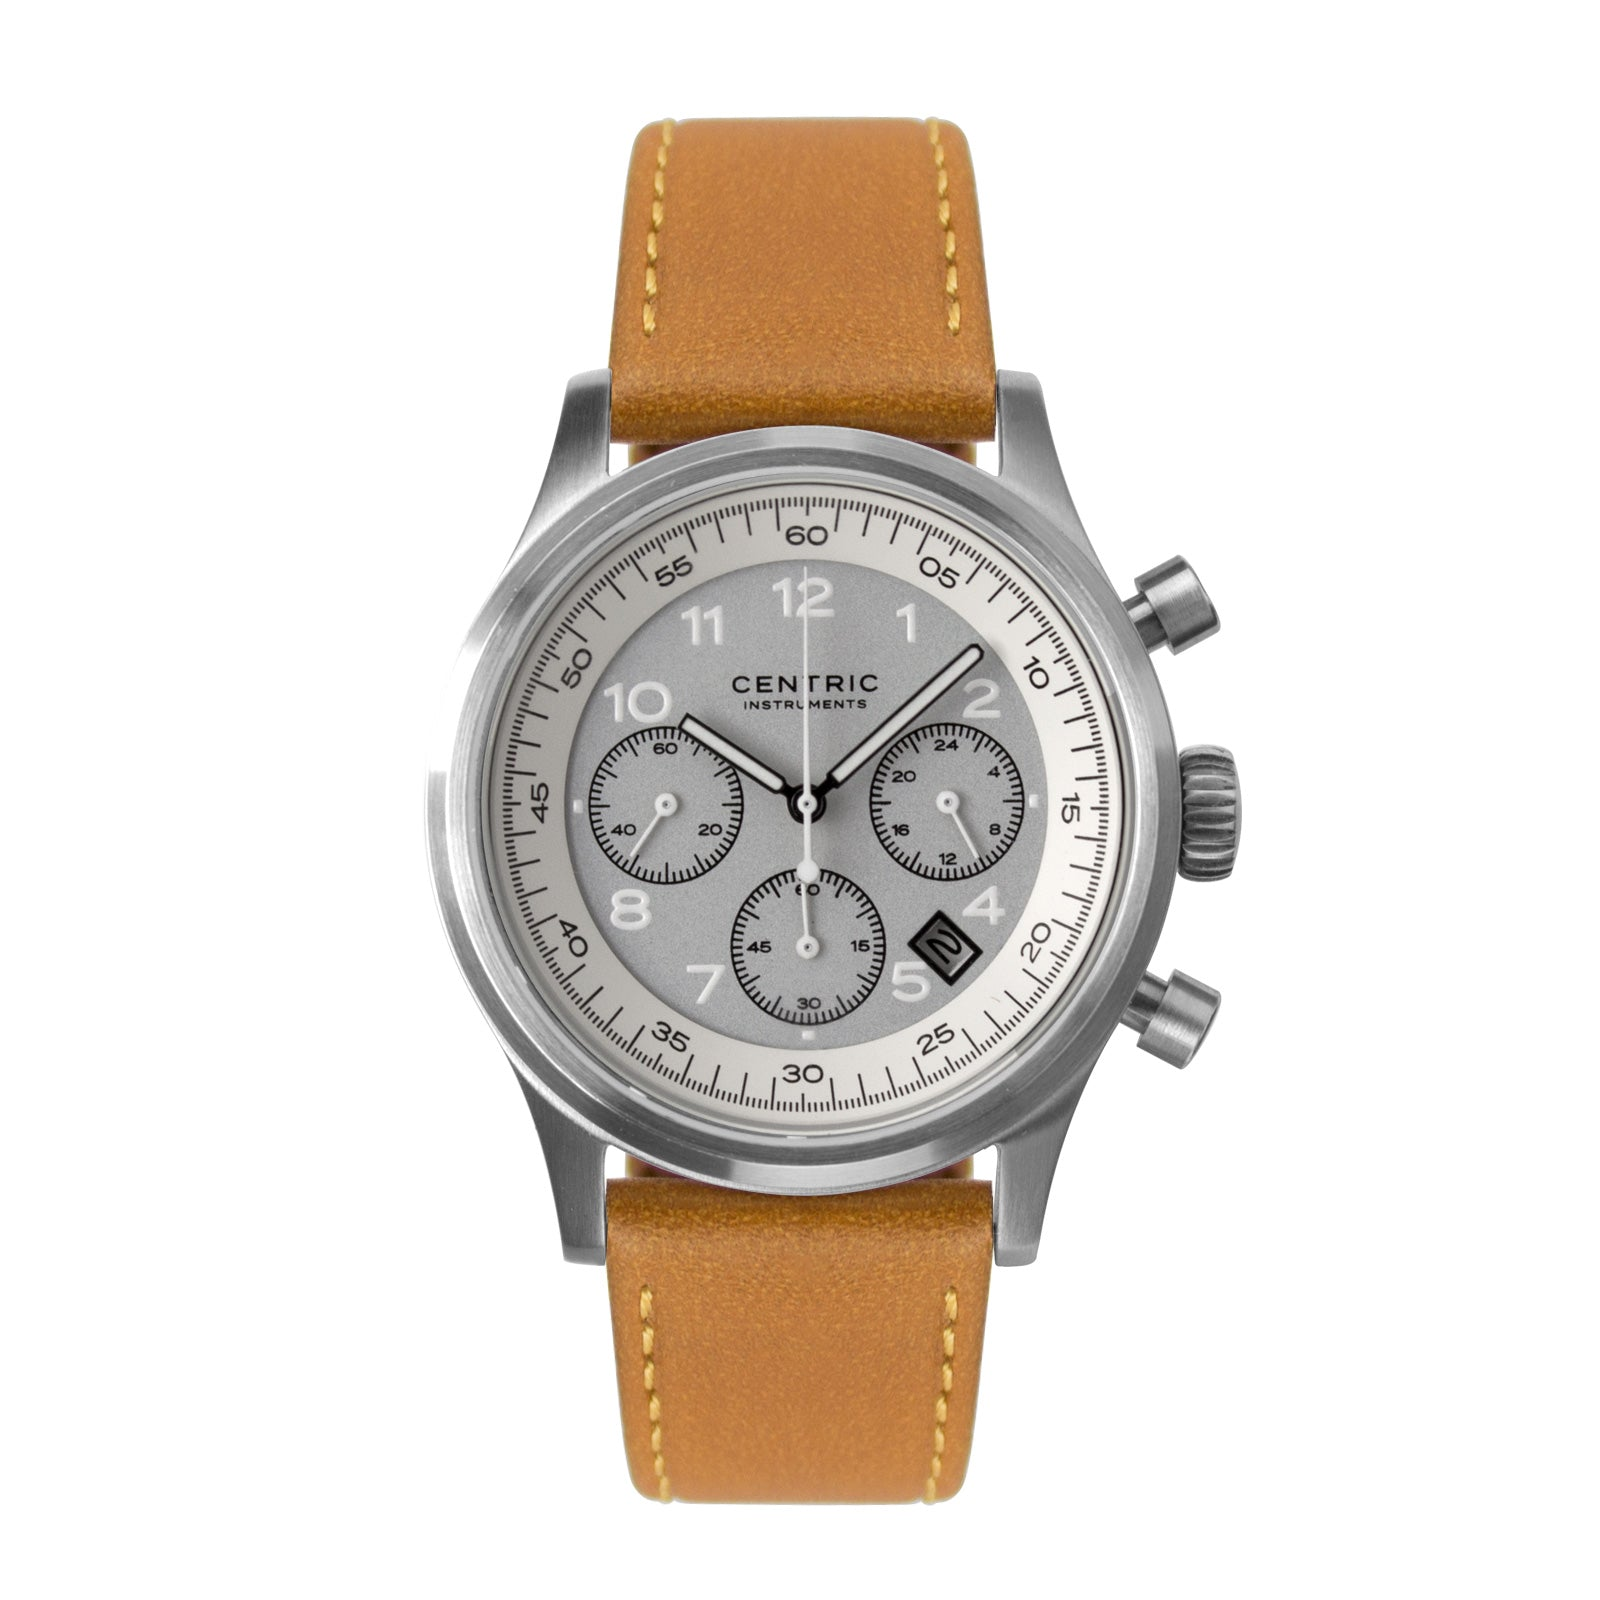 Pilot Chronograph Classic (Ivory) - Classic Leather